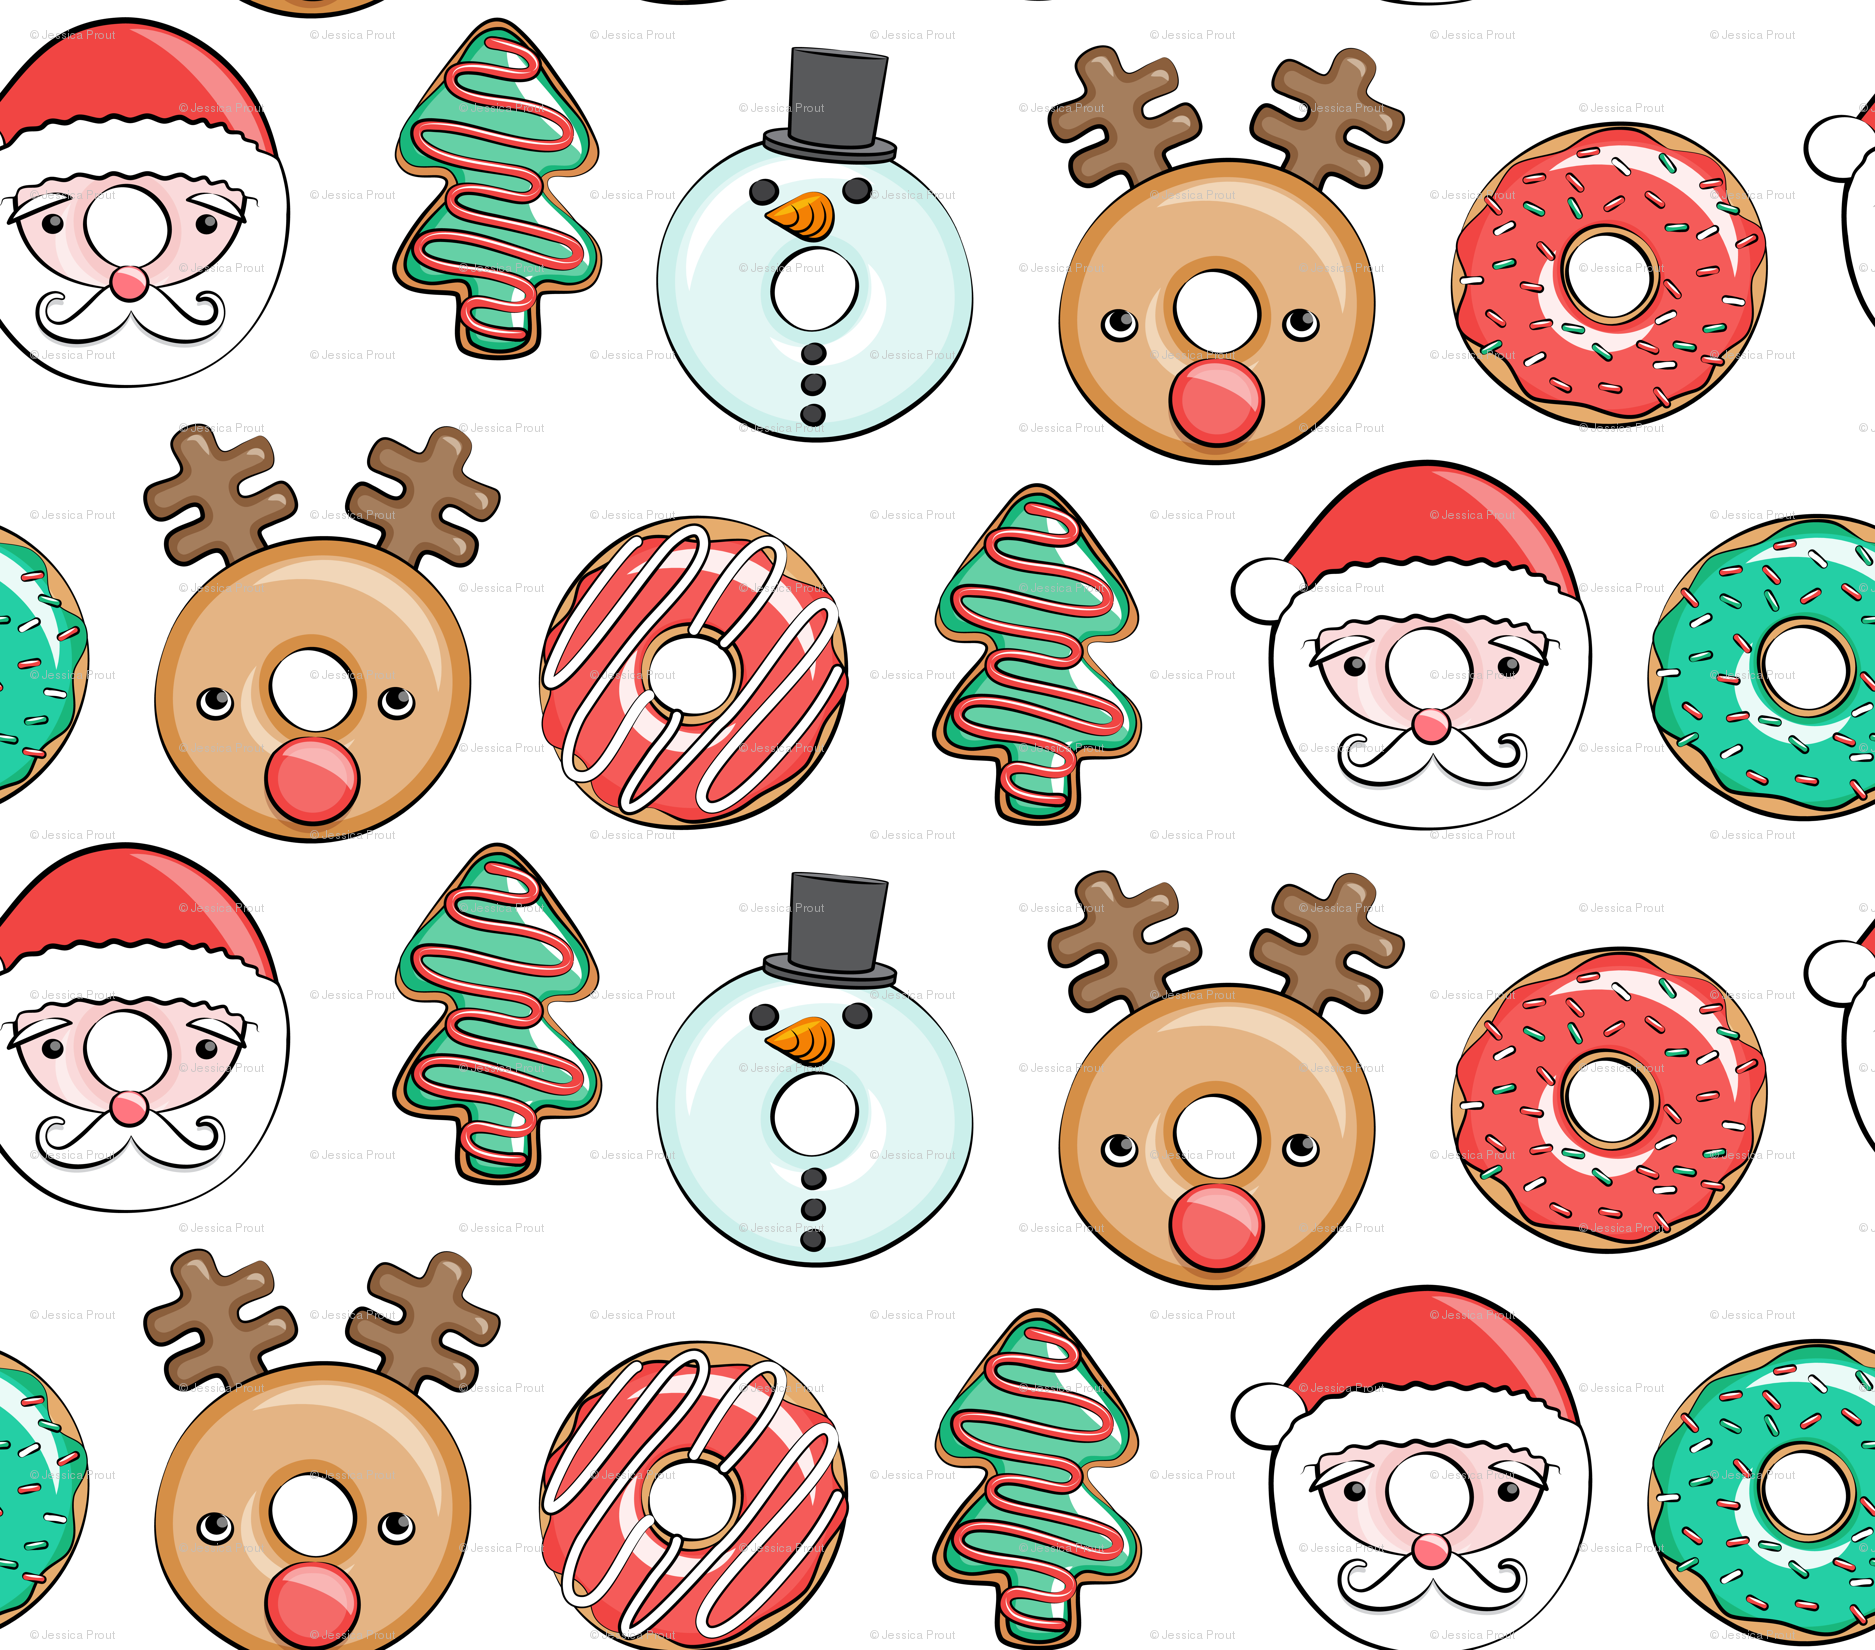 Christmas donuts - Santa, Christmas tree, reindeer - white wallpaper ...